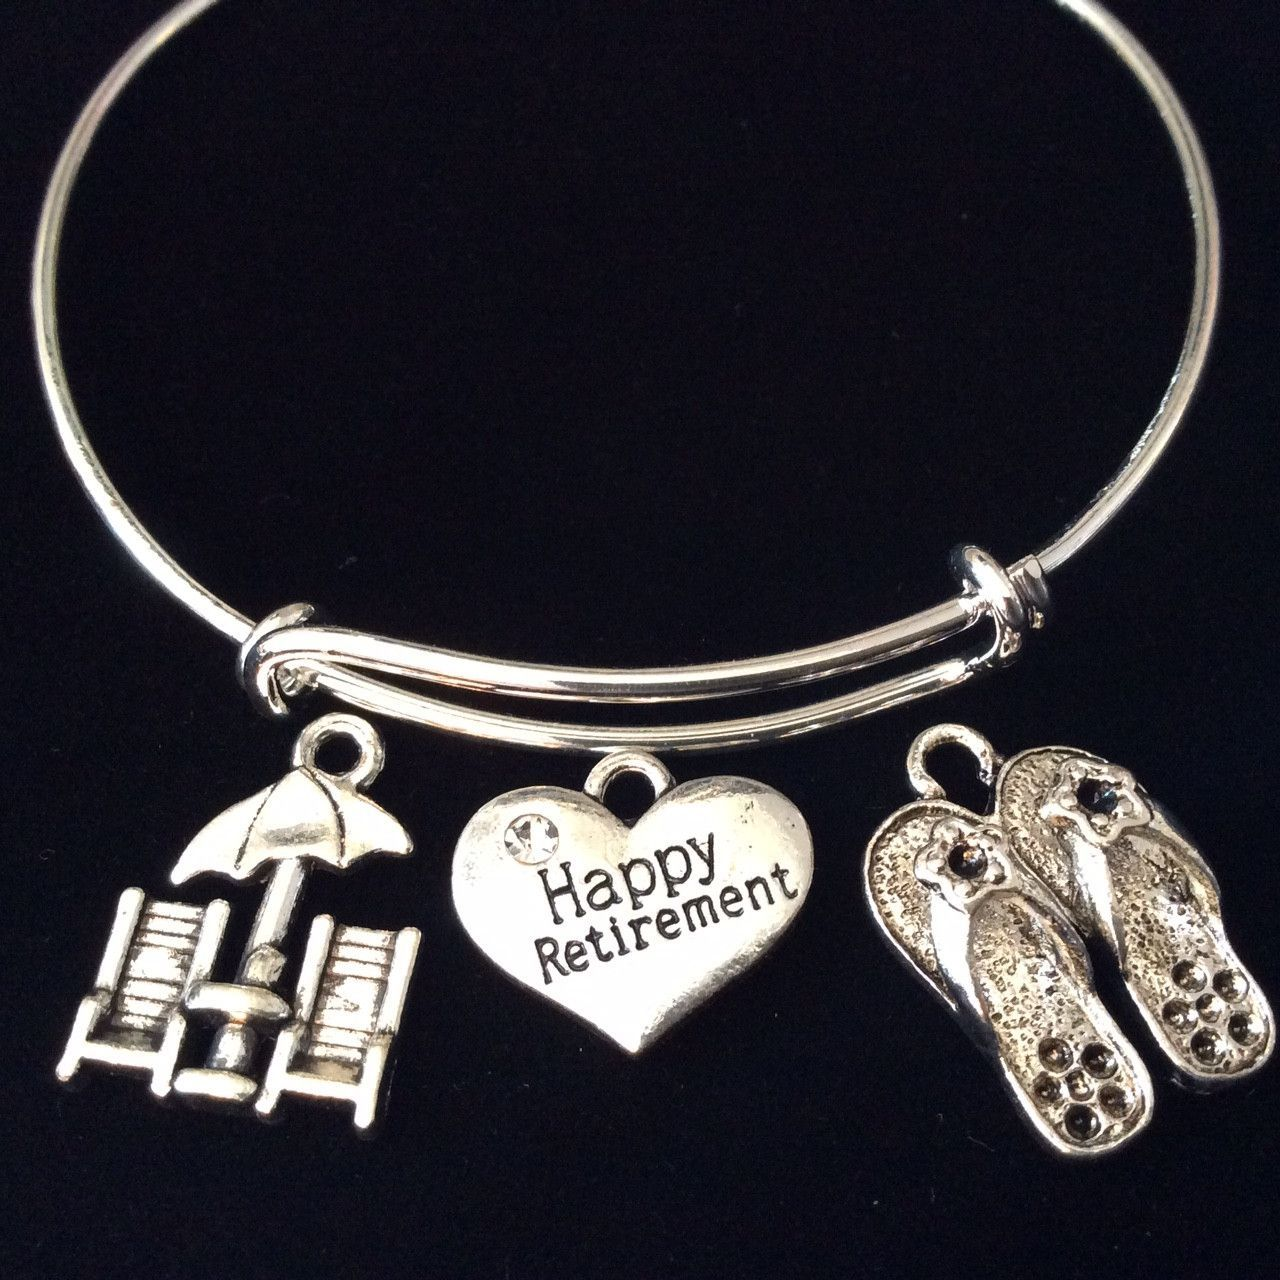 Health Peace Hiness Hy Retirement Erfly Daisy Flower Expandable Silver Charm Bracelet Adjule Wire Bangle Office